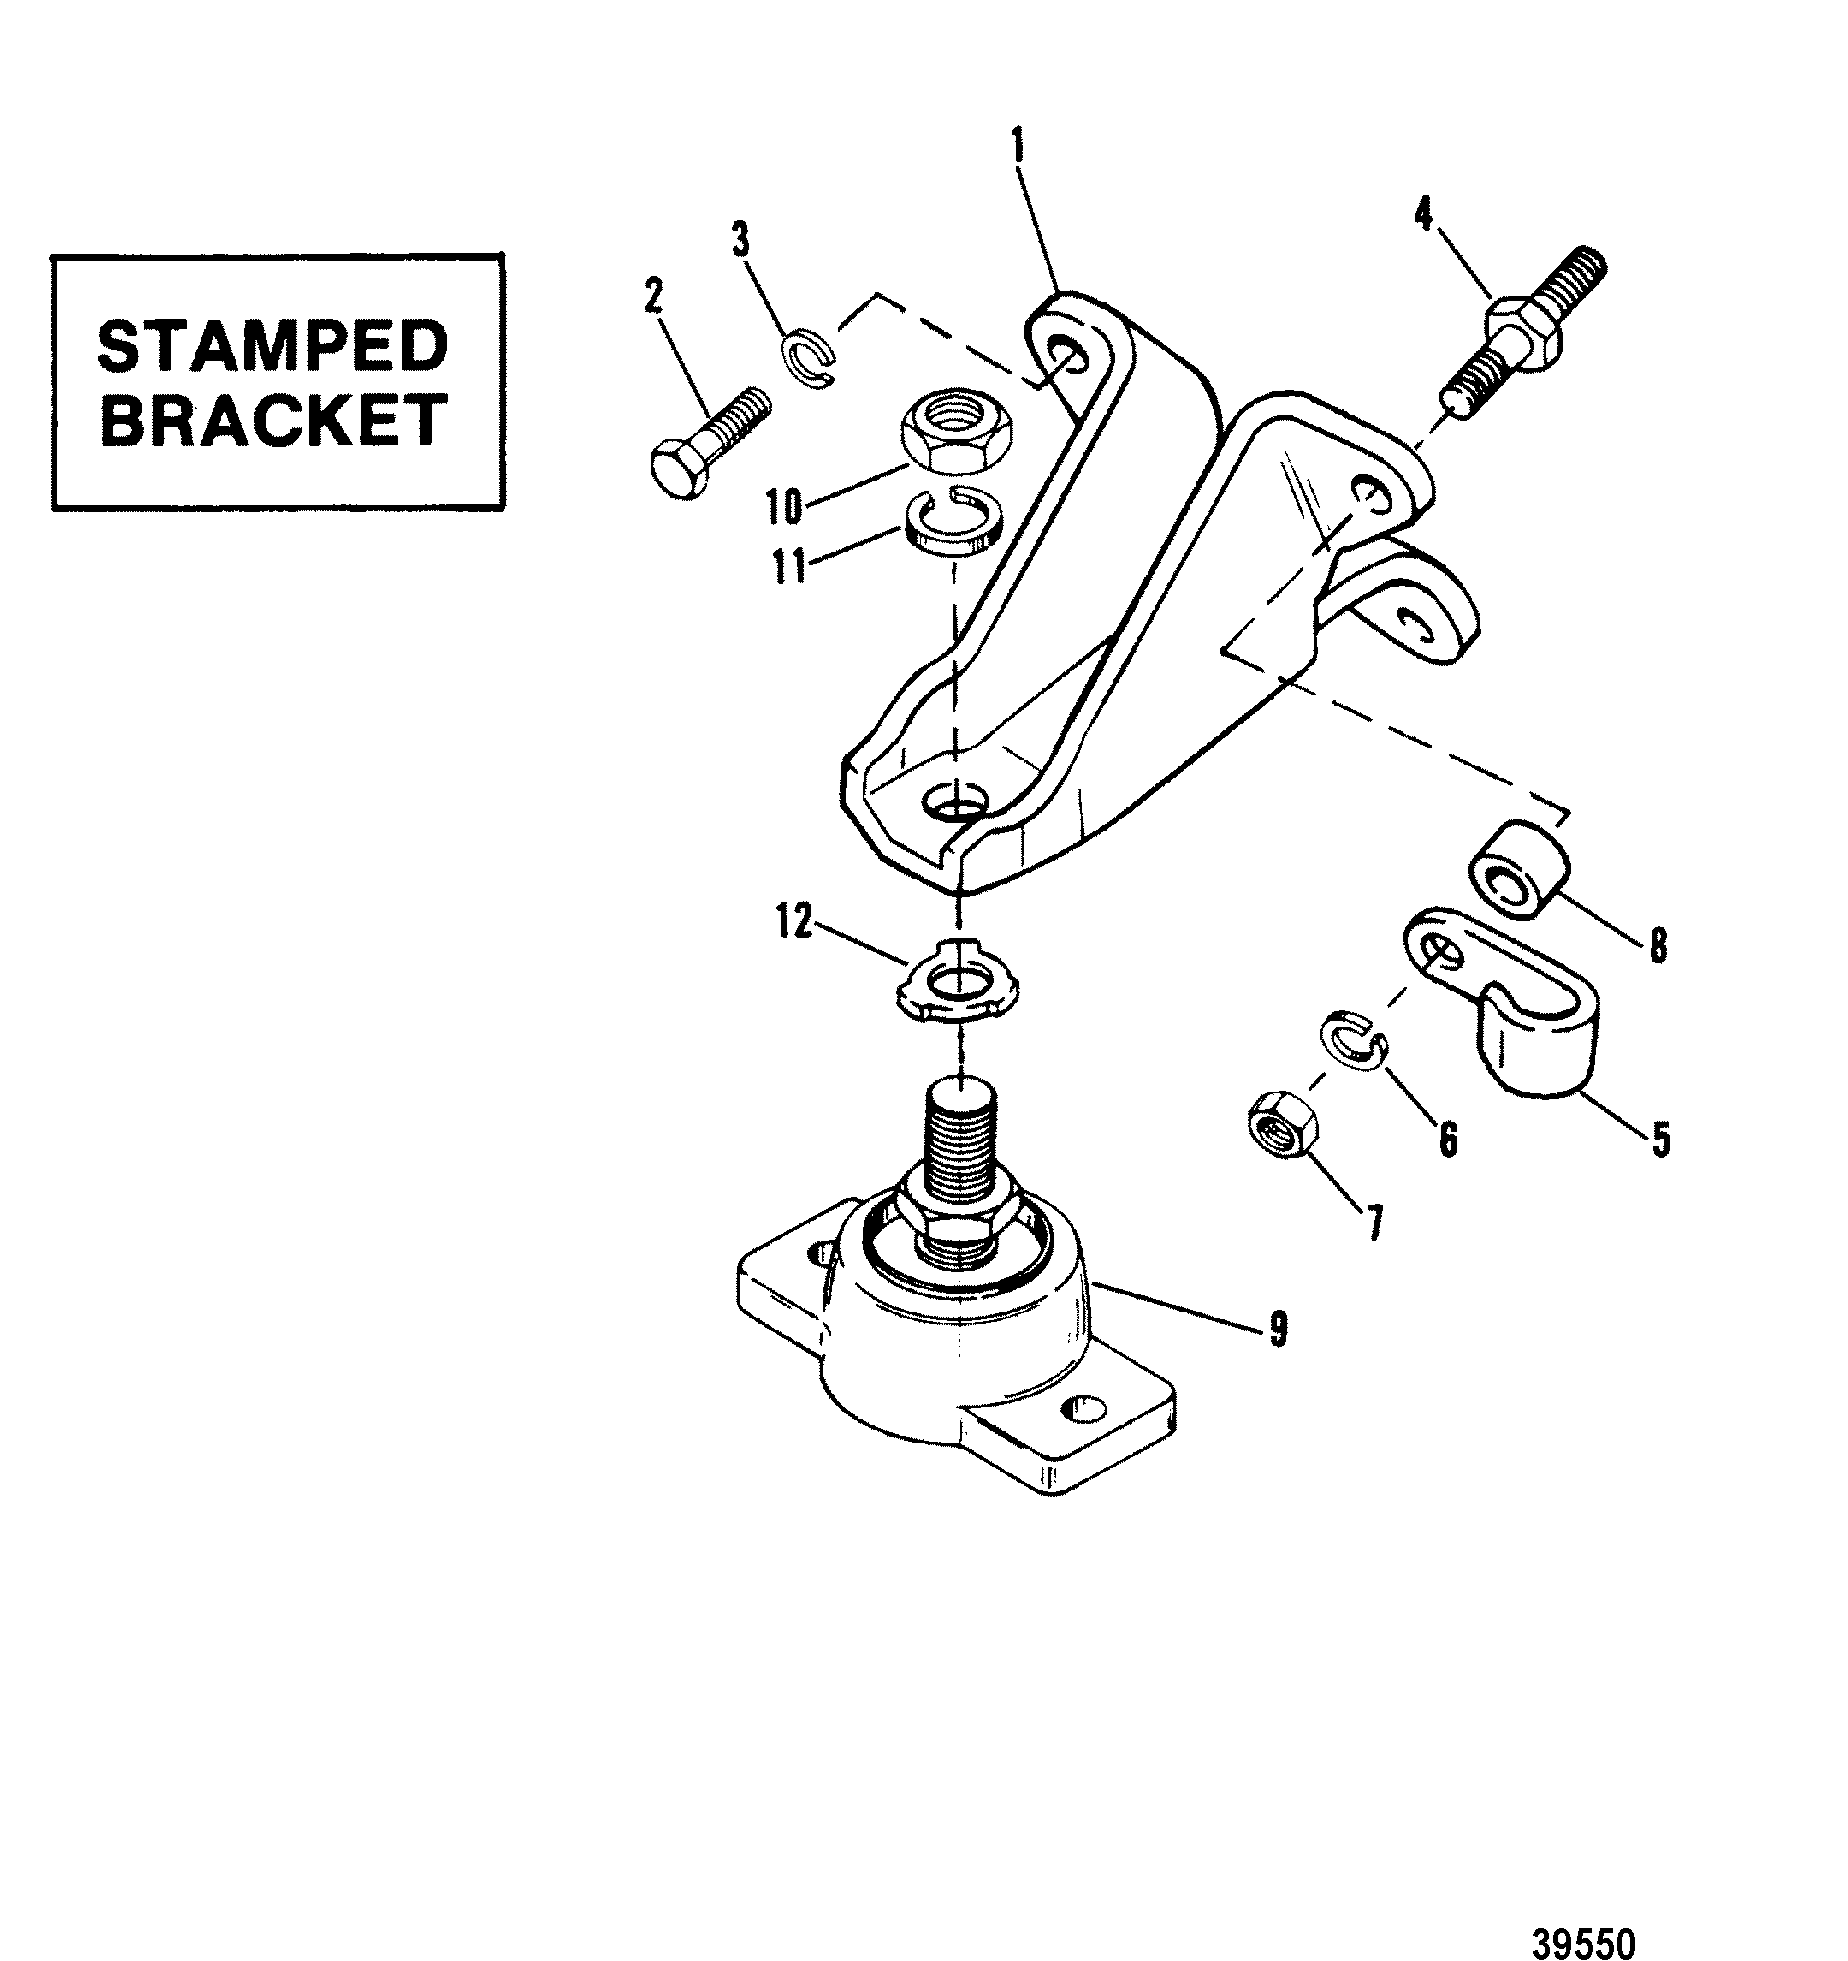 Mercruiser 898 2 Bbl Gm 305 V 8 1983 1978 Wiring Diagram Engine Mountingstamped Bracket